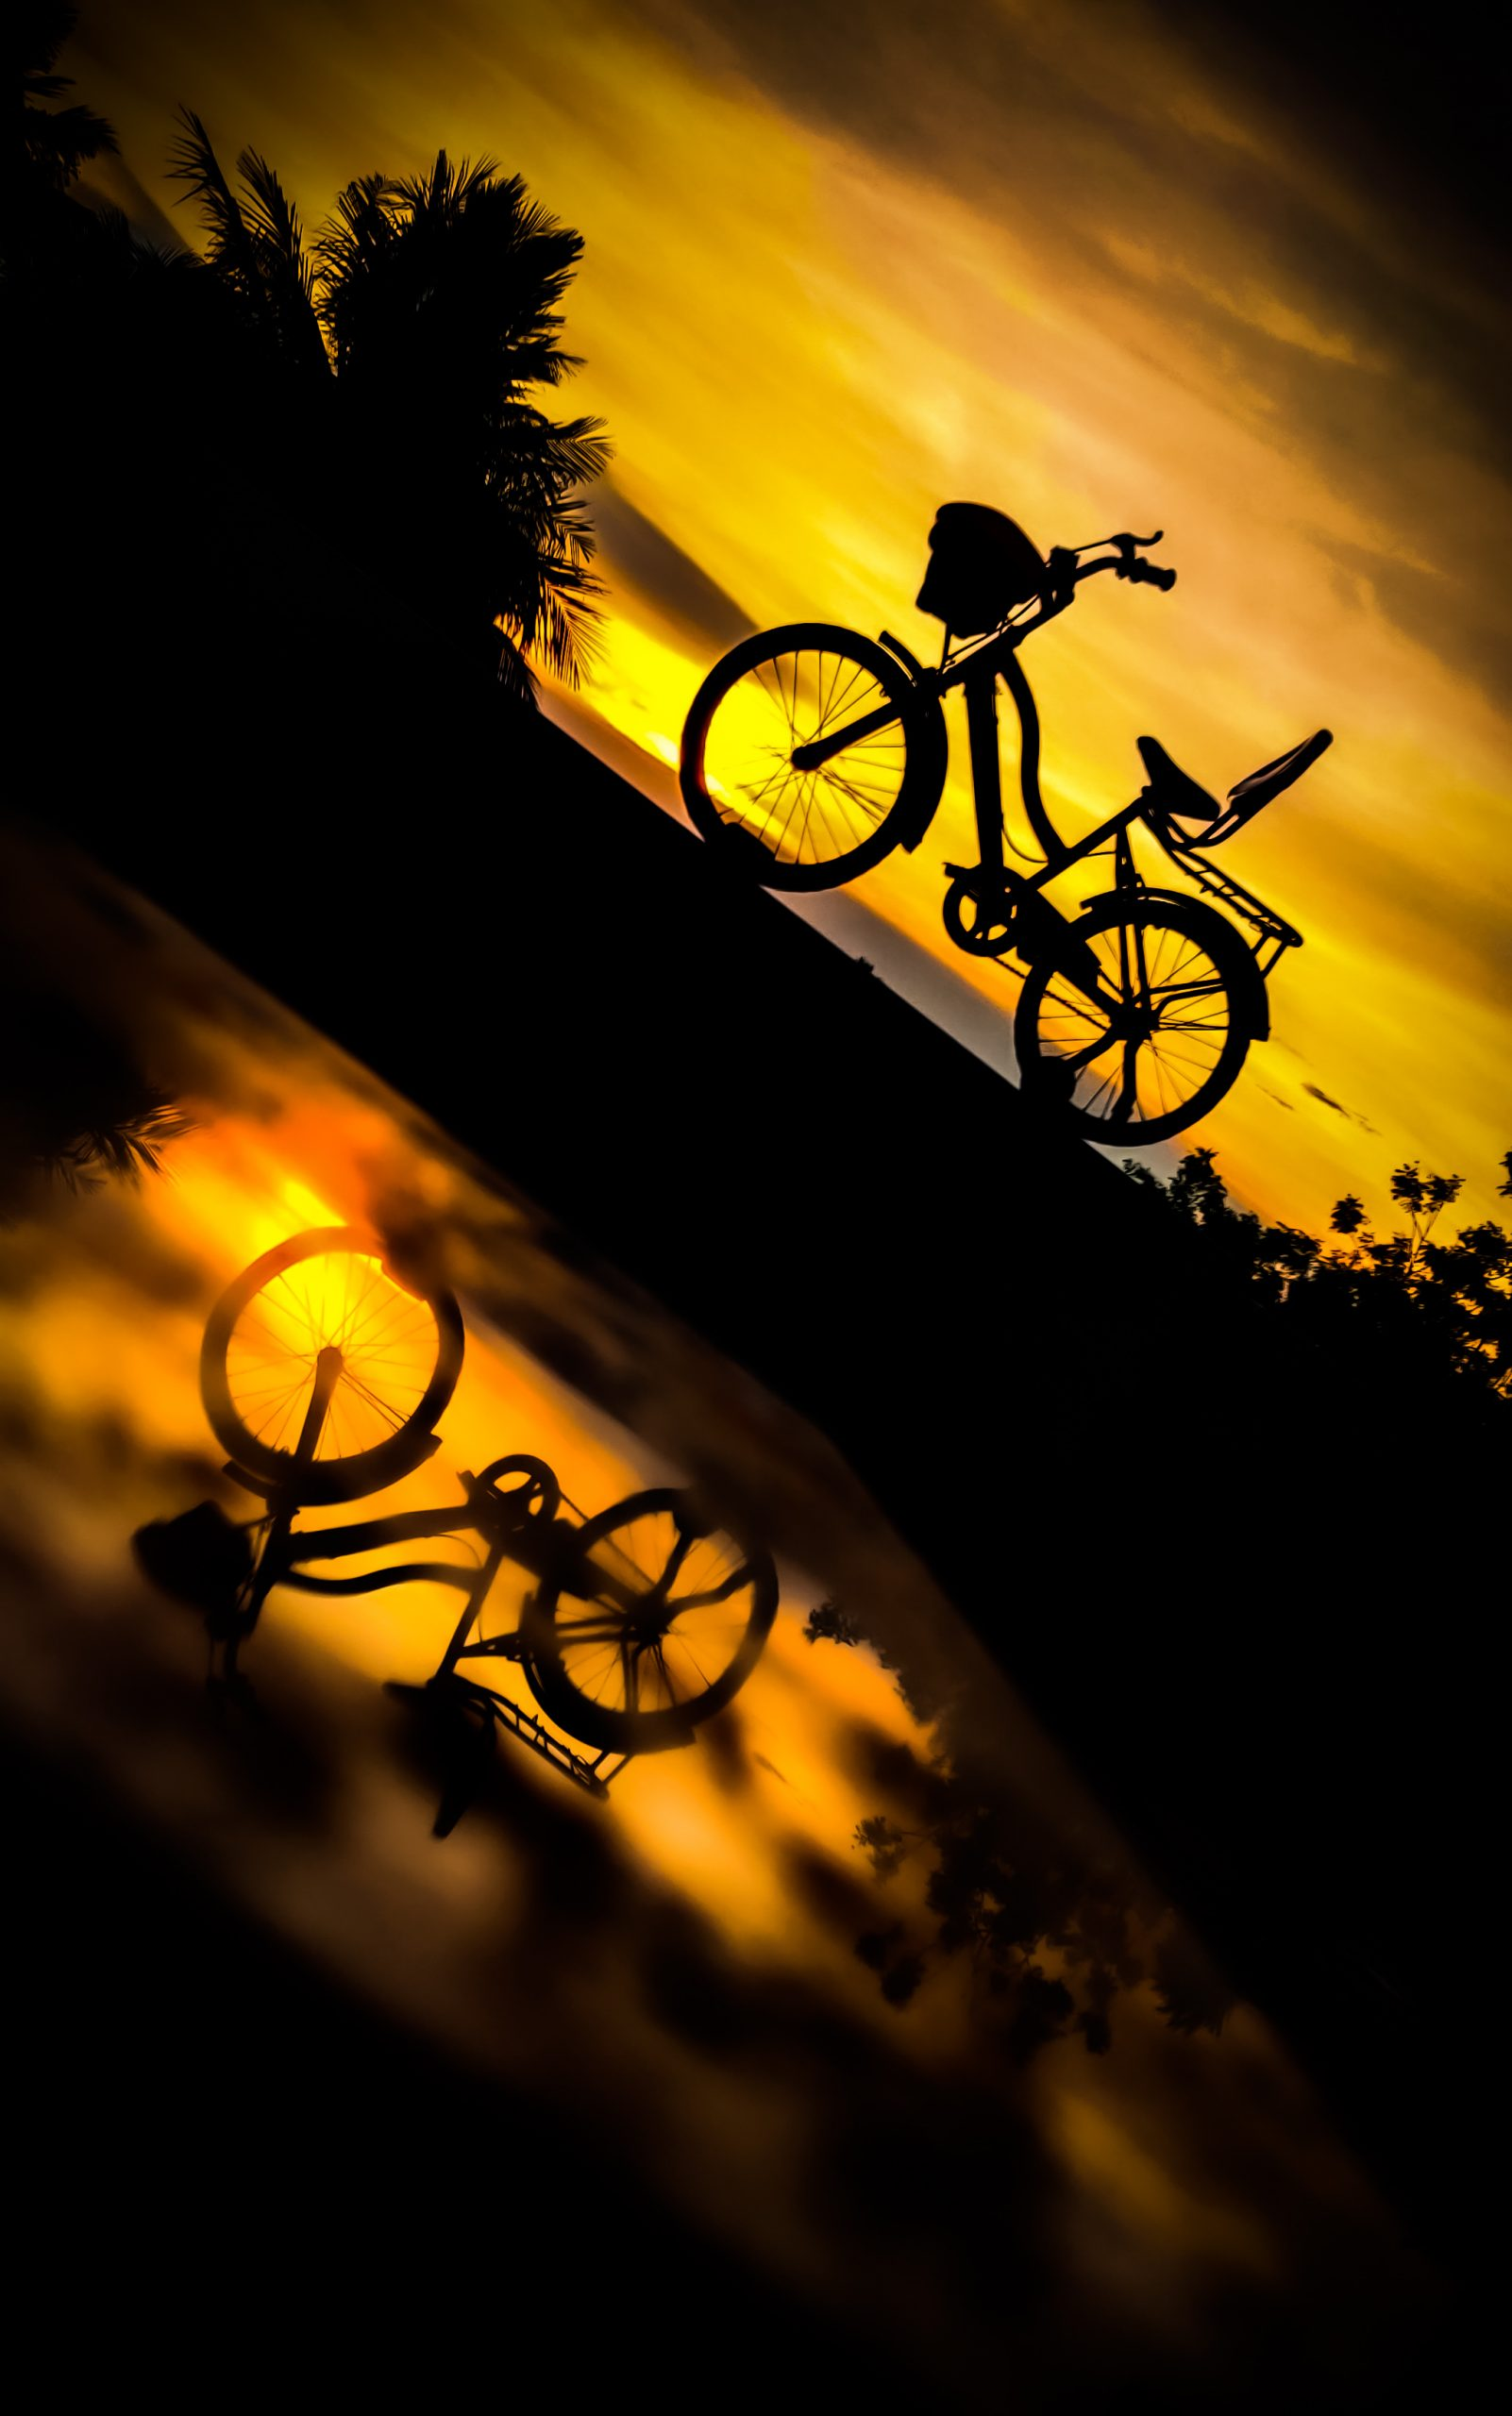 reflection of cycle in water